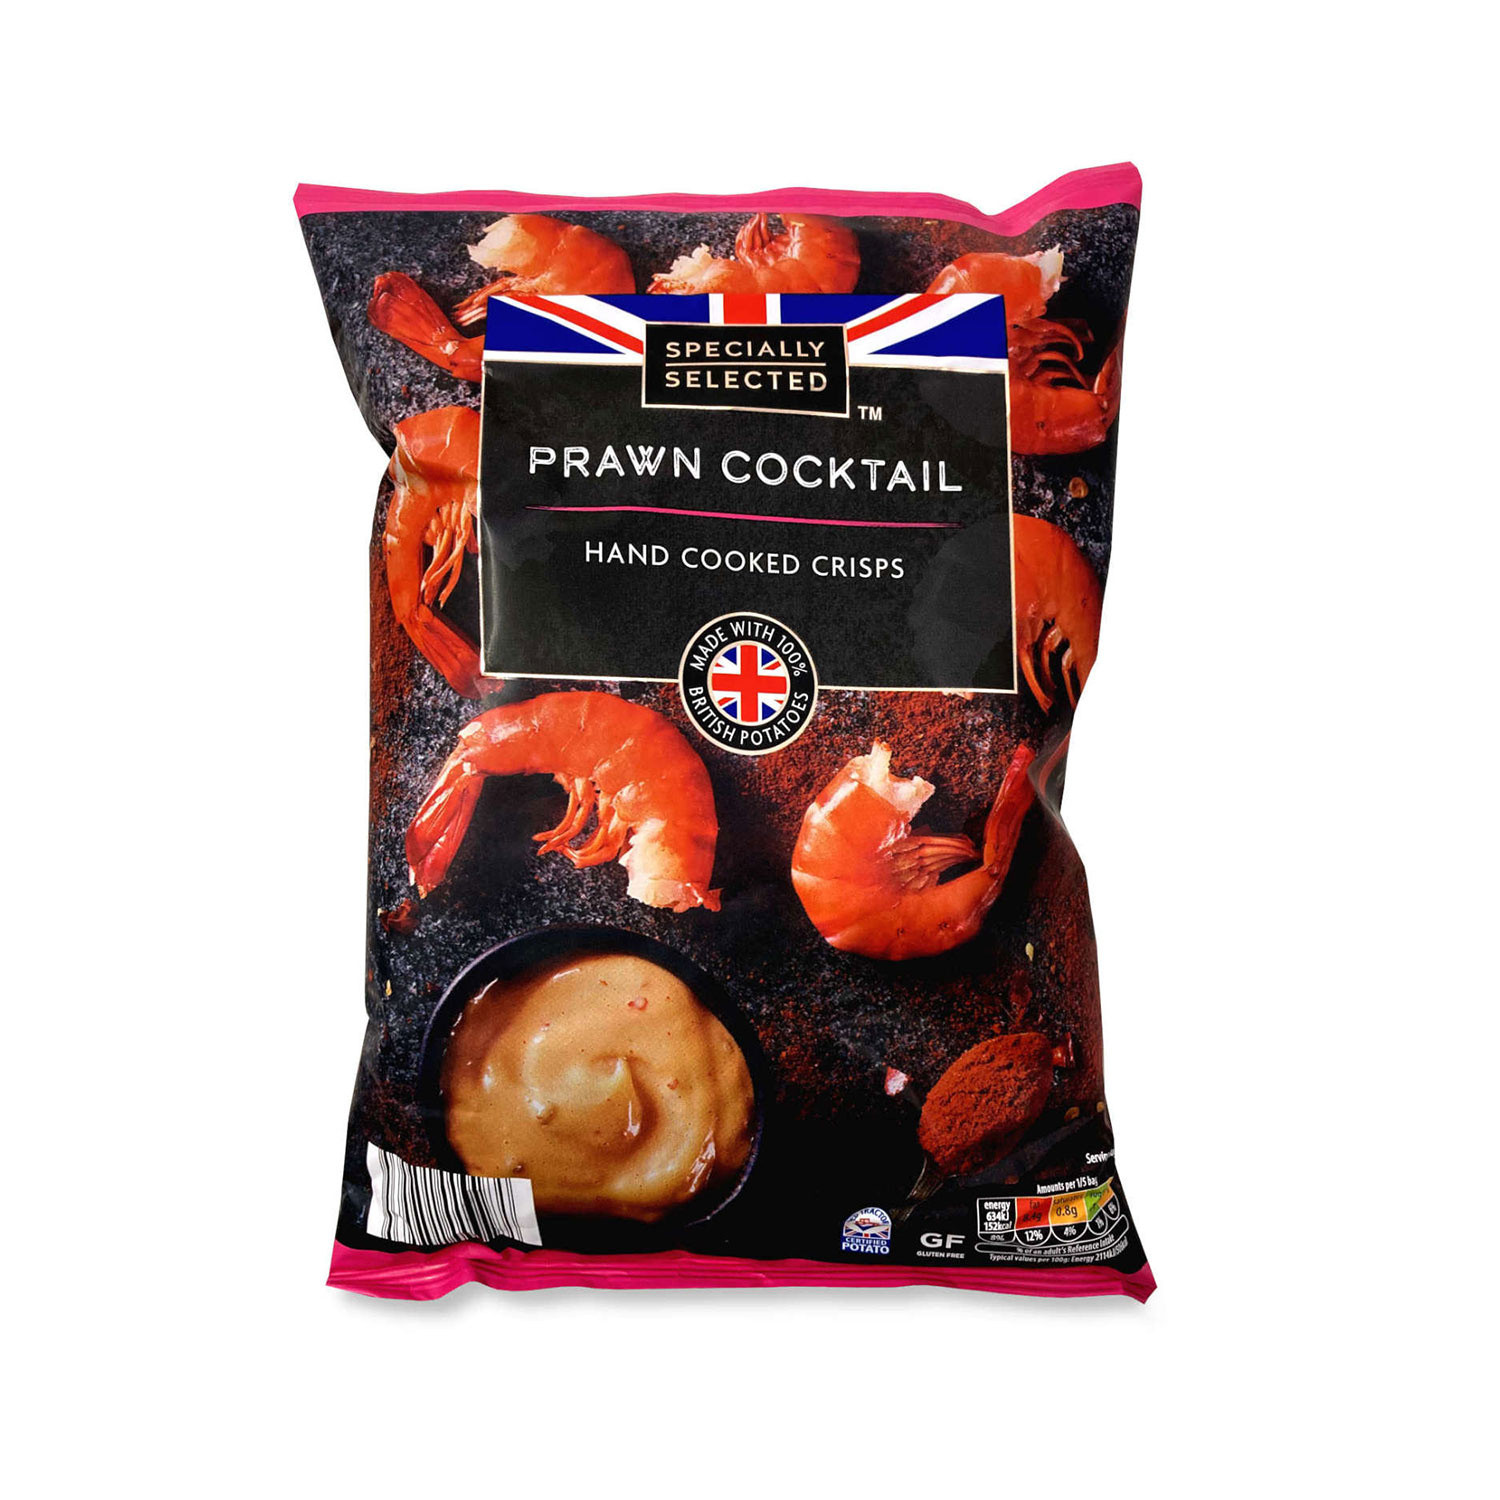 Prawn Cocktail Hand Cooked Crisps